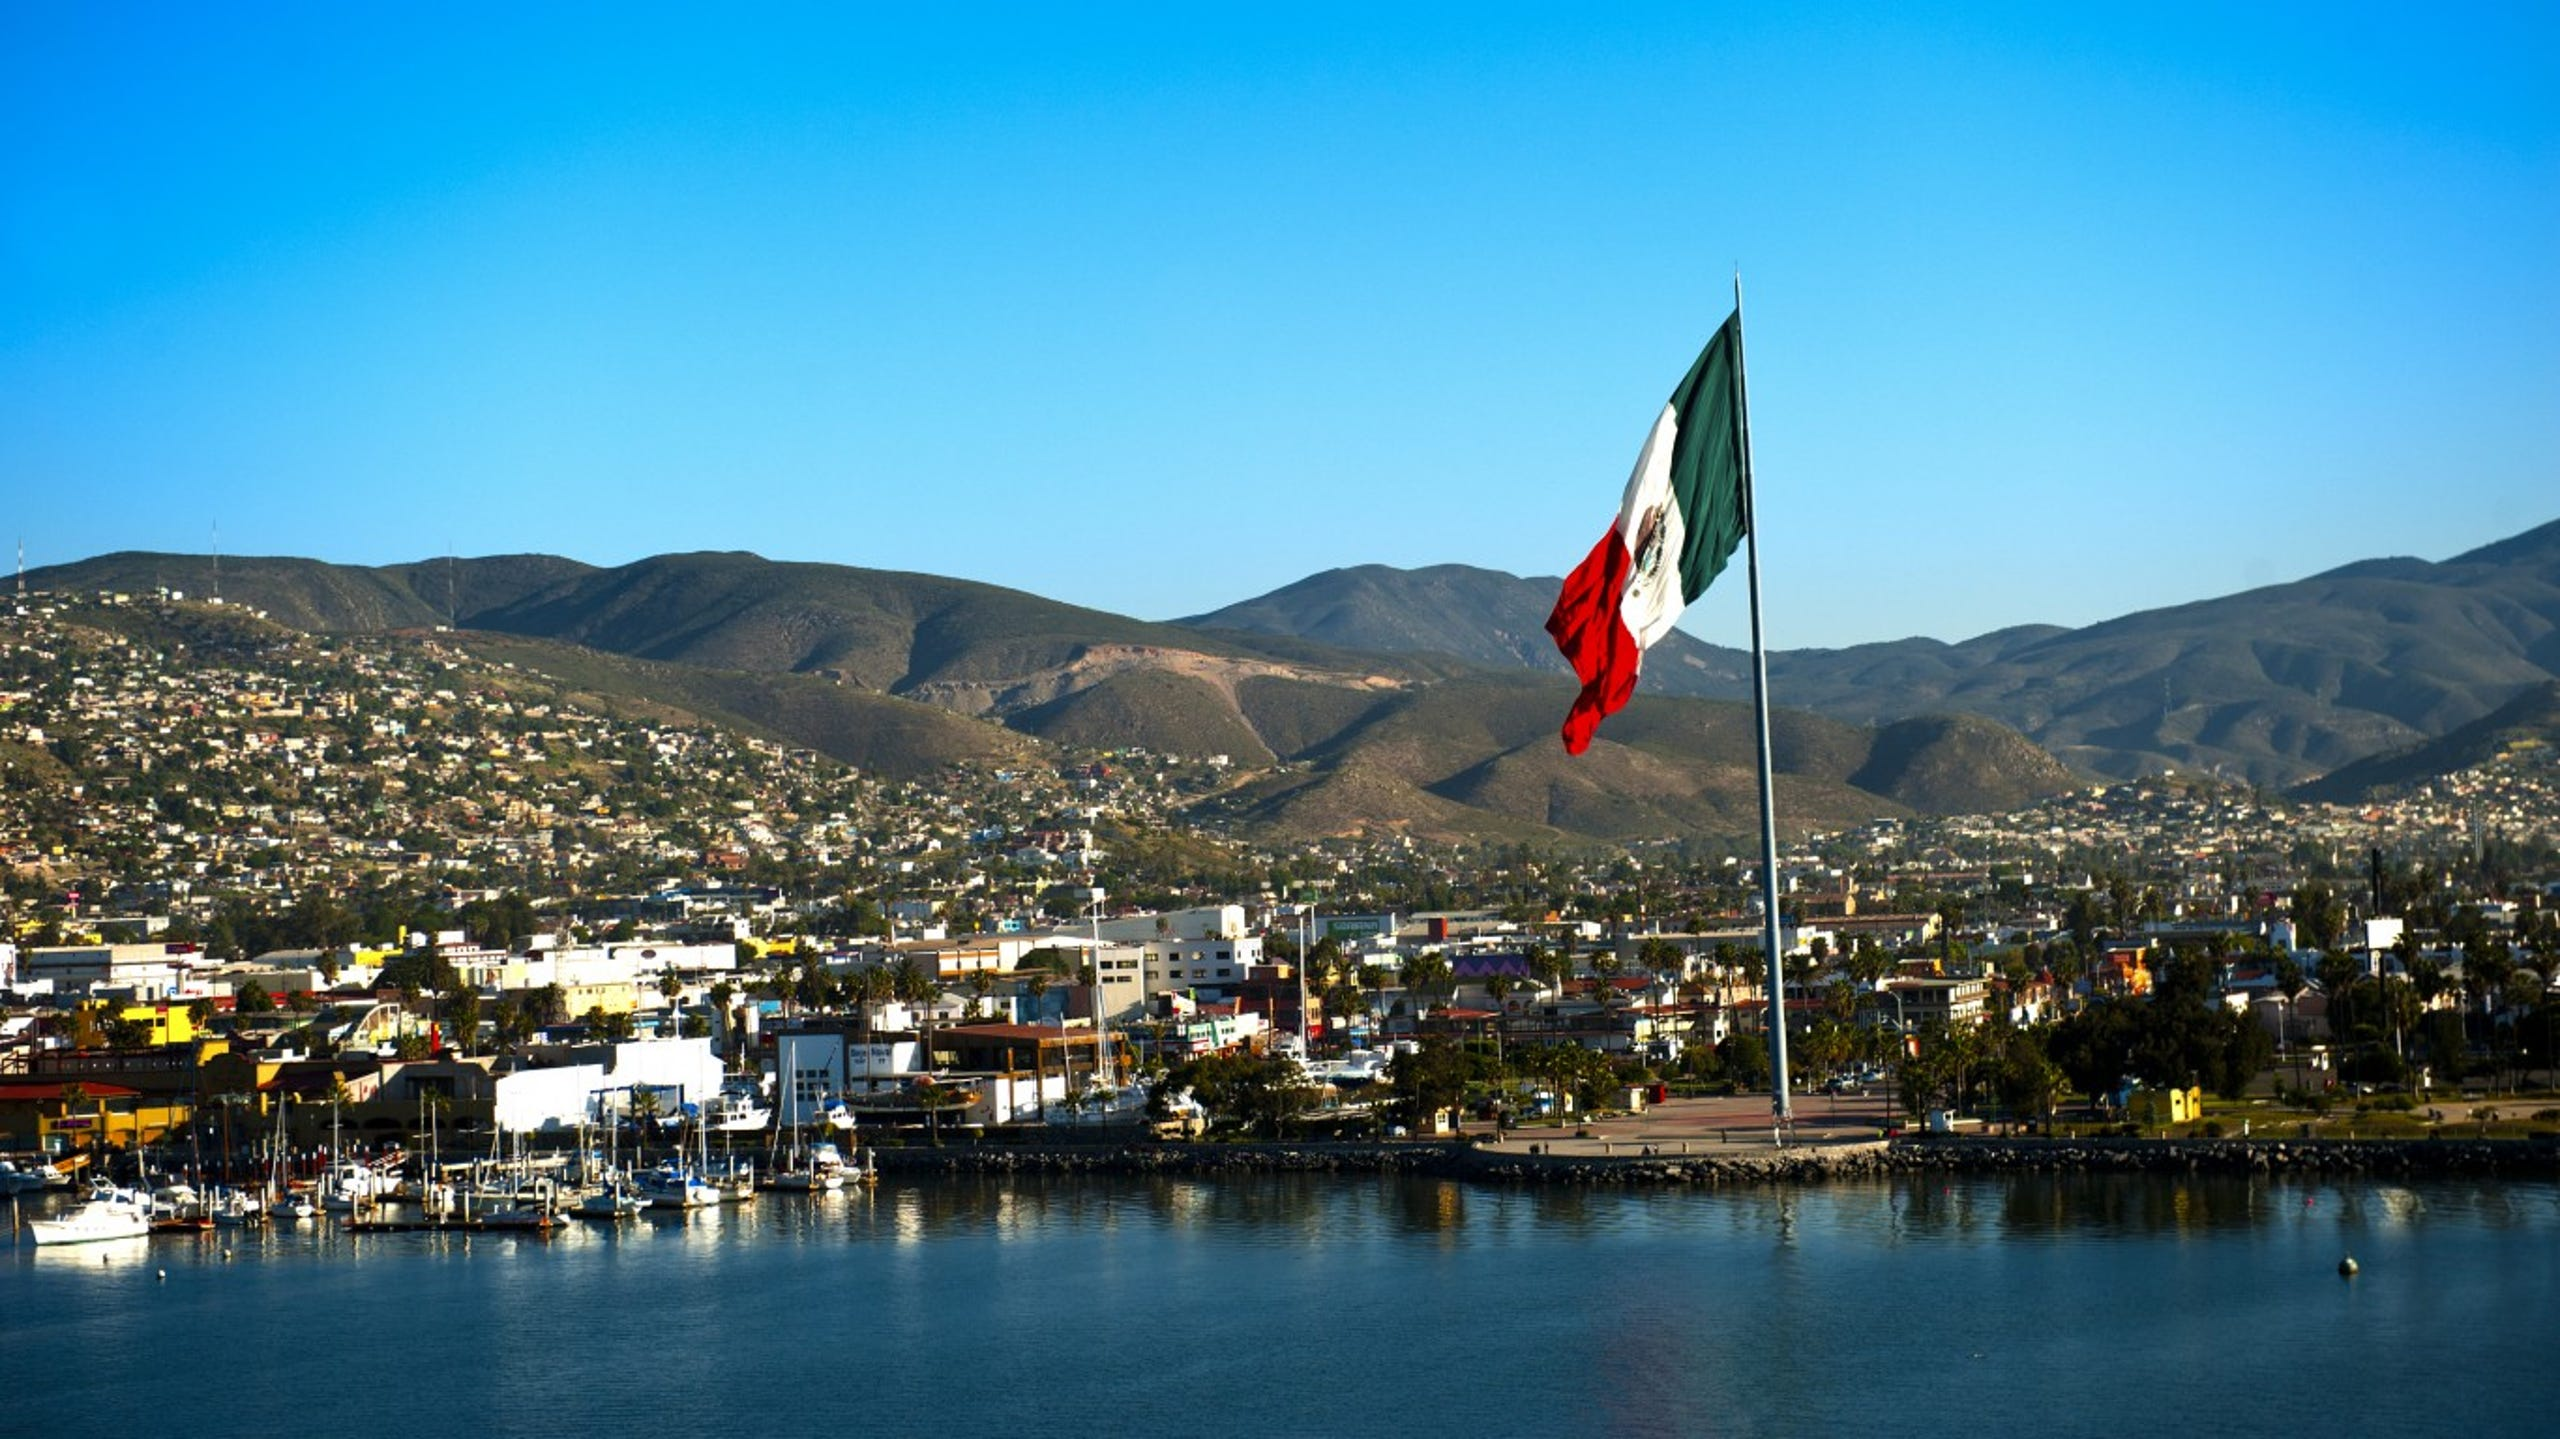 <strong>34. Ensenada, Mexico</strong><br /> <strong>&bull; Homicides per 100,000 in 2018:</strong> 47<br /> <strong>&bull; Homicides in 2018:</strong> 253<br /> <strong>&bull; Population:</strong> 542,896<br /> <br /> This coastal city on the Baja Peninsula, 65 miles south of Tijuana, is one of six Mexican cities debuting on this ranking amid a nationwide increase in violent crime. Ensenada has traditionally avoided cartel-related violence inflicting other parts of western Mexico, but like other Baja cities, the violence seems to be shifting its direction. In 2017, the tourist city of Los Cabos, on the tip of the Baja peninsula, was the world's most dangerous city. Los Cabos fell from the list in 2018.